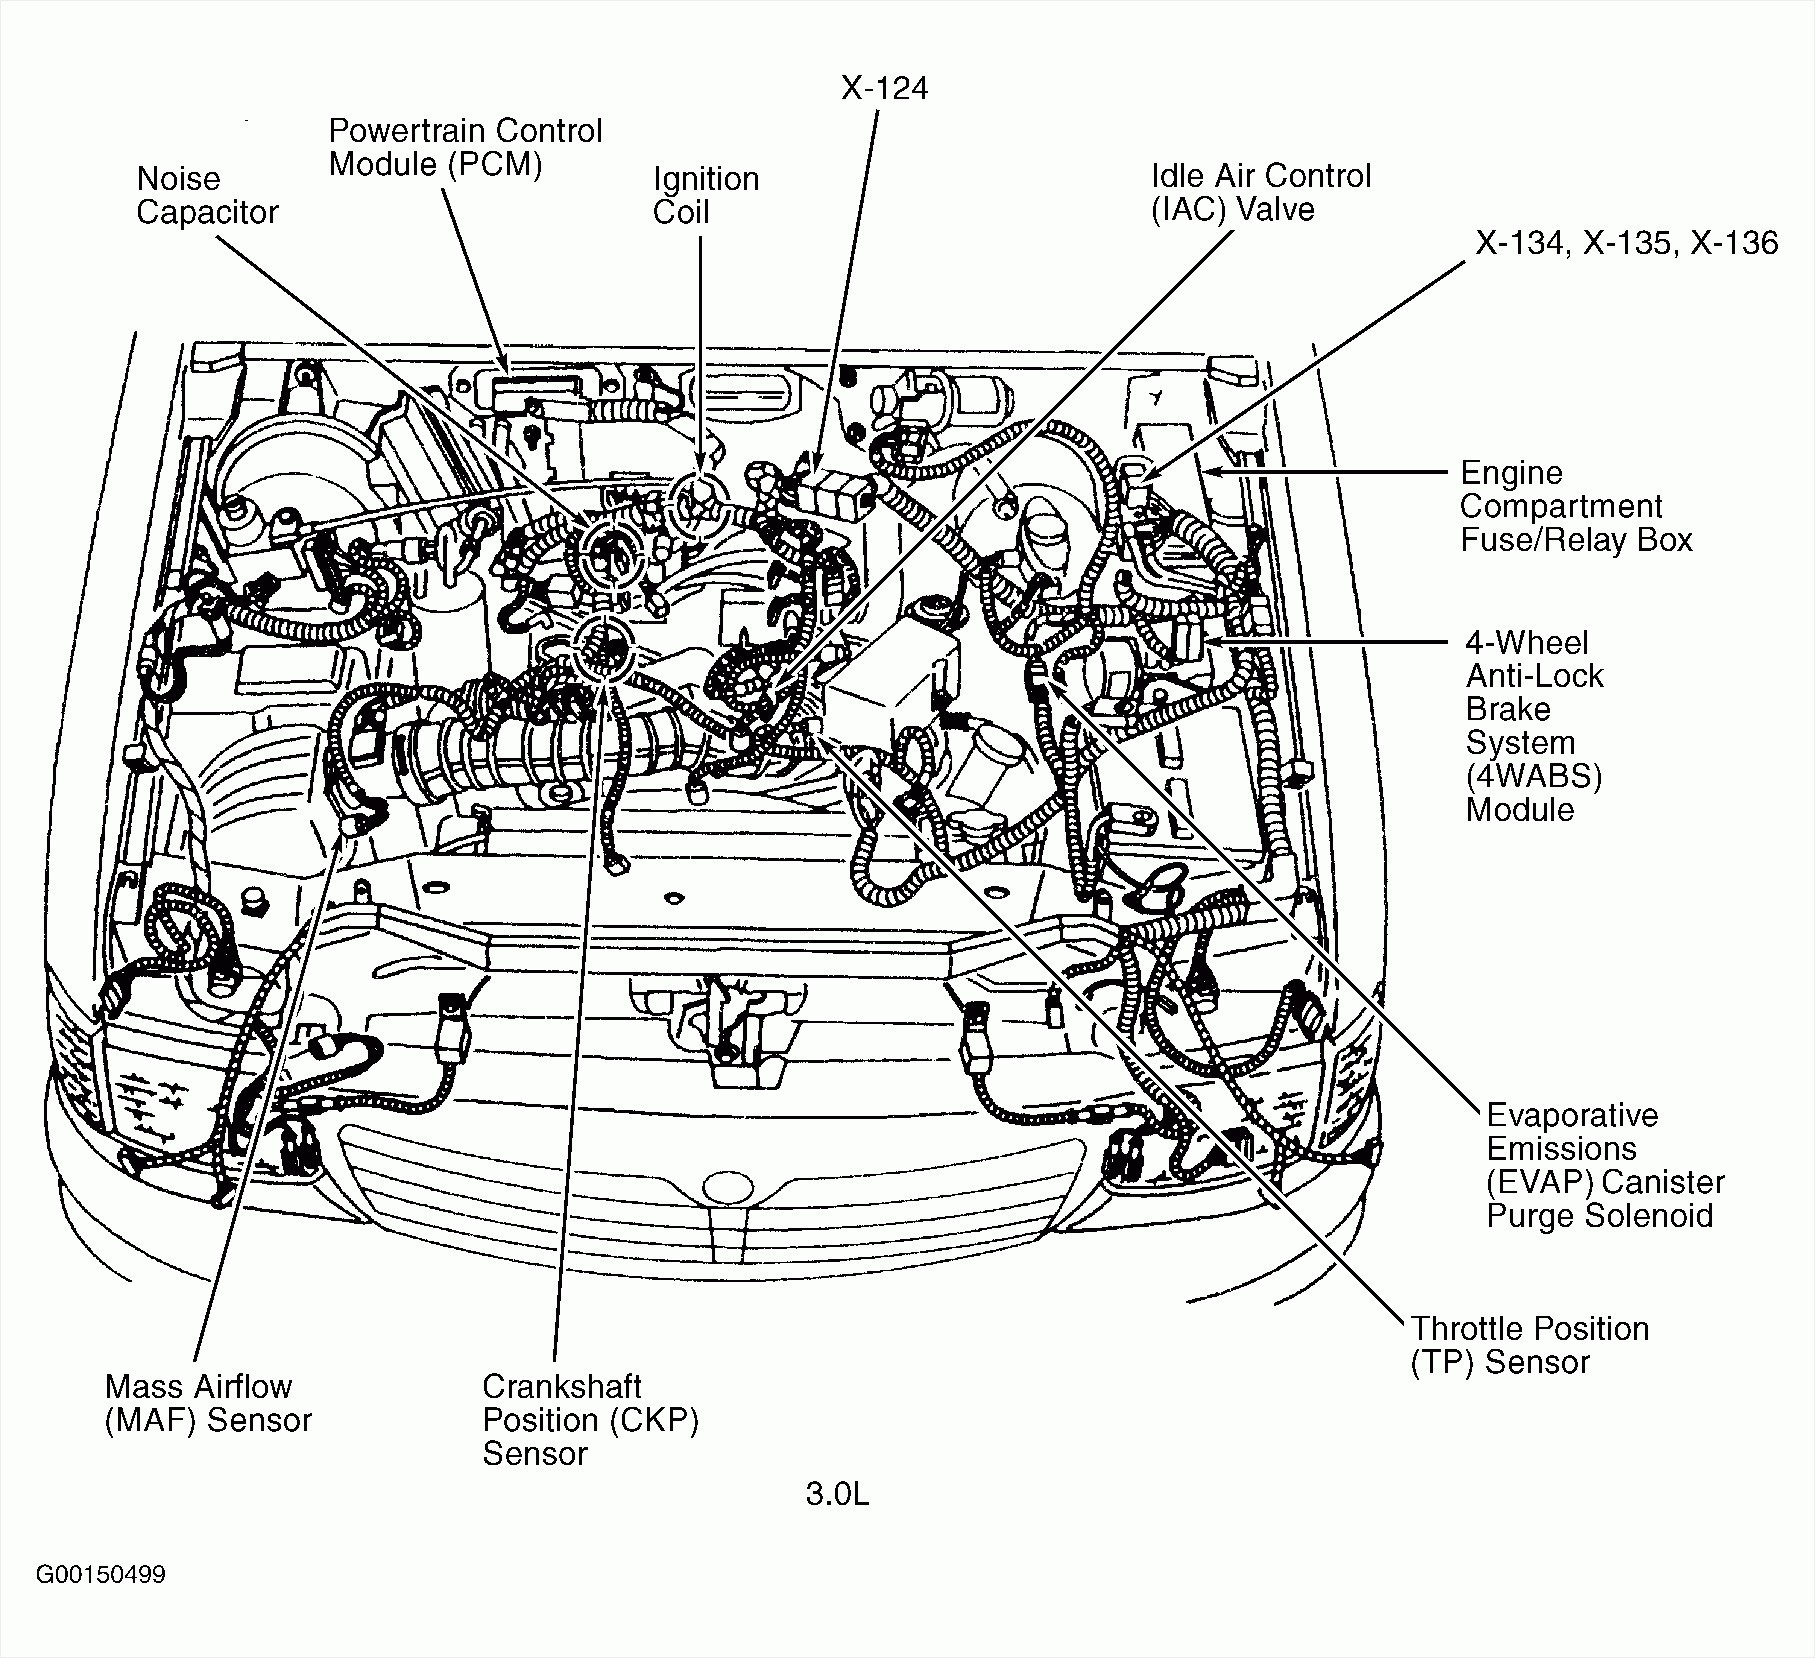 hight resolution of escape vacuum hose diagram on 2002 jeep wrangler vacuum hose diagram 2001 jeep grand cherokee vacuum line diagram lzk gallery